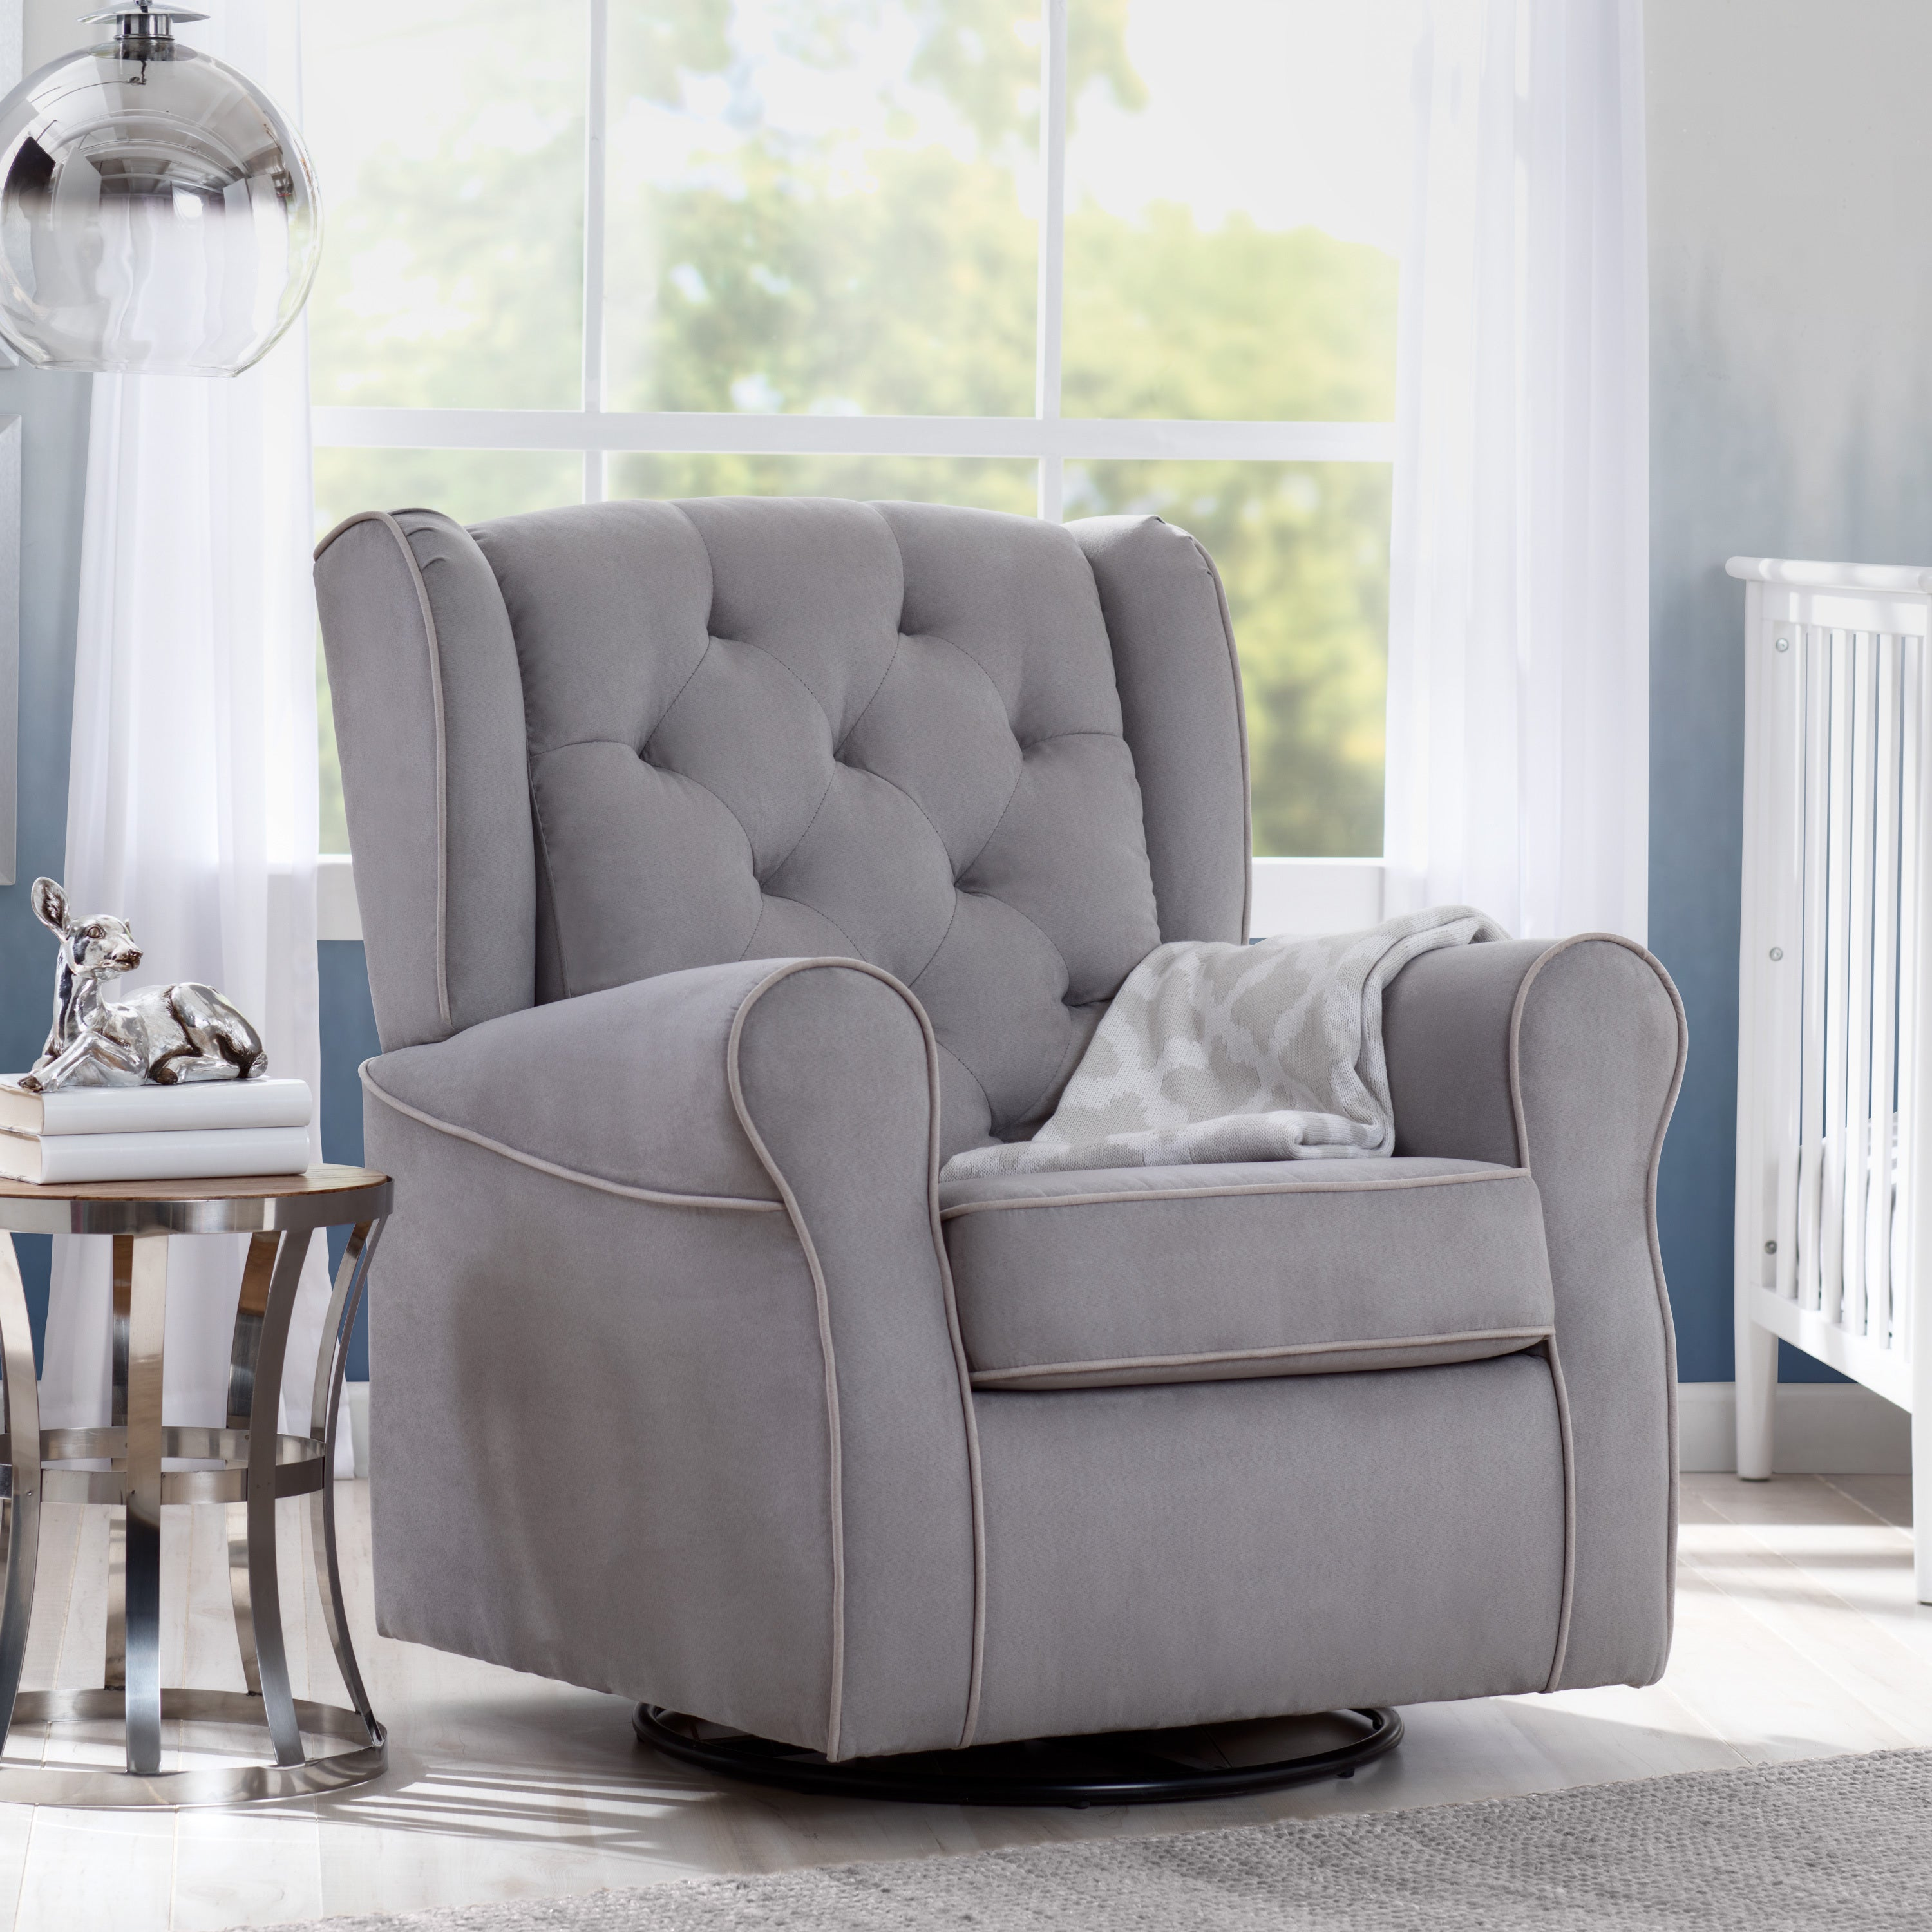 and recliners livings gliders rockersgliders room max furniture swivel items chairs rocking living for rockers b